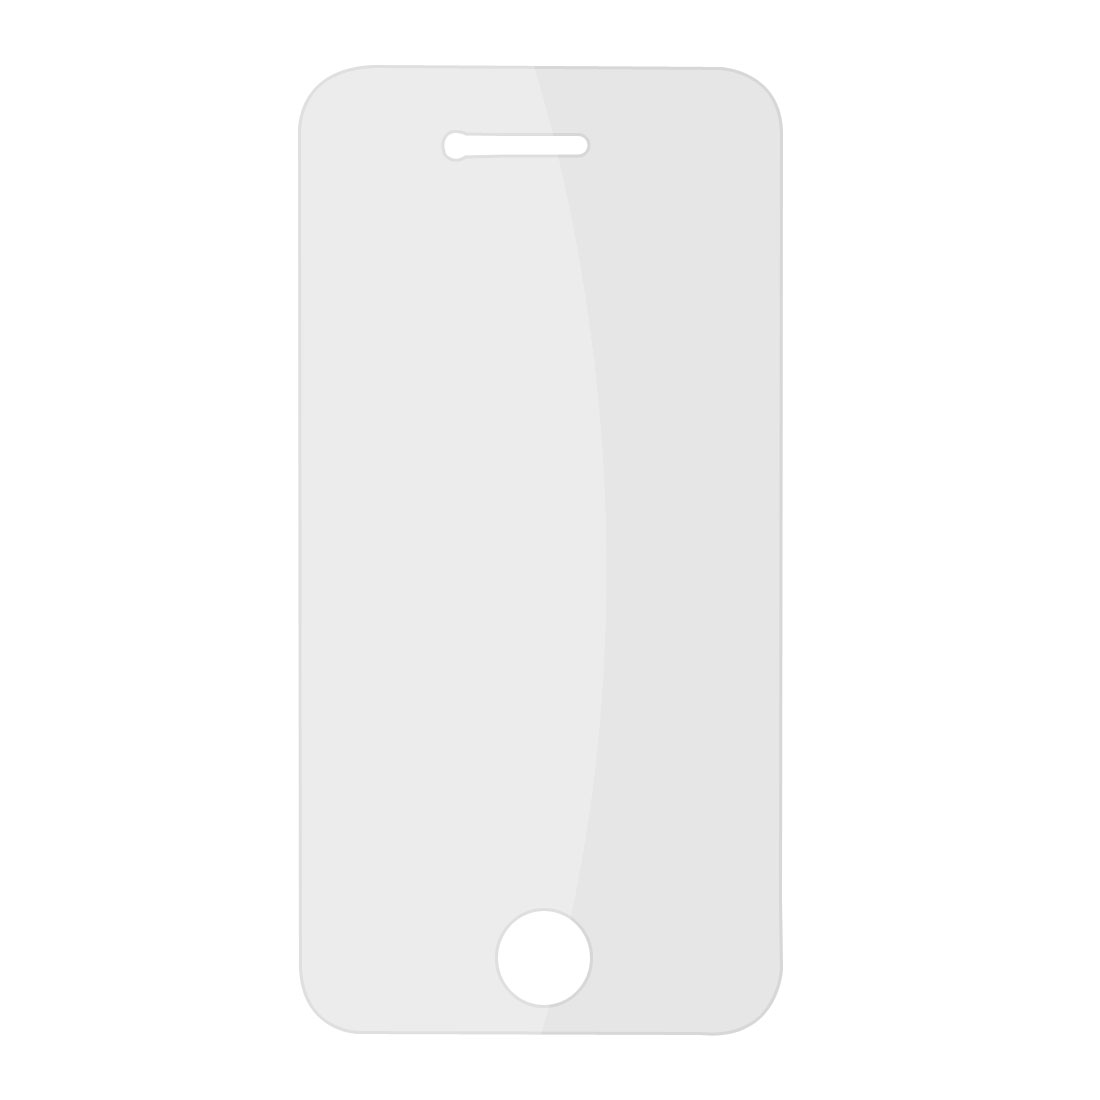 Anti-dust Clear Screen Protector Film Guards for iPhone 4 4G 4S